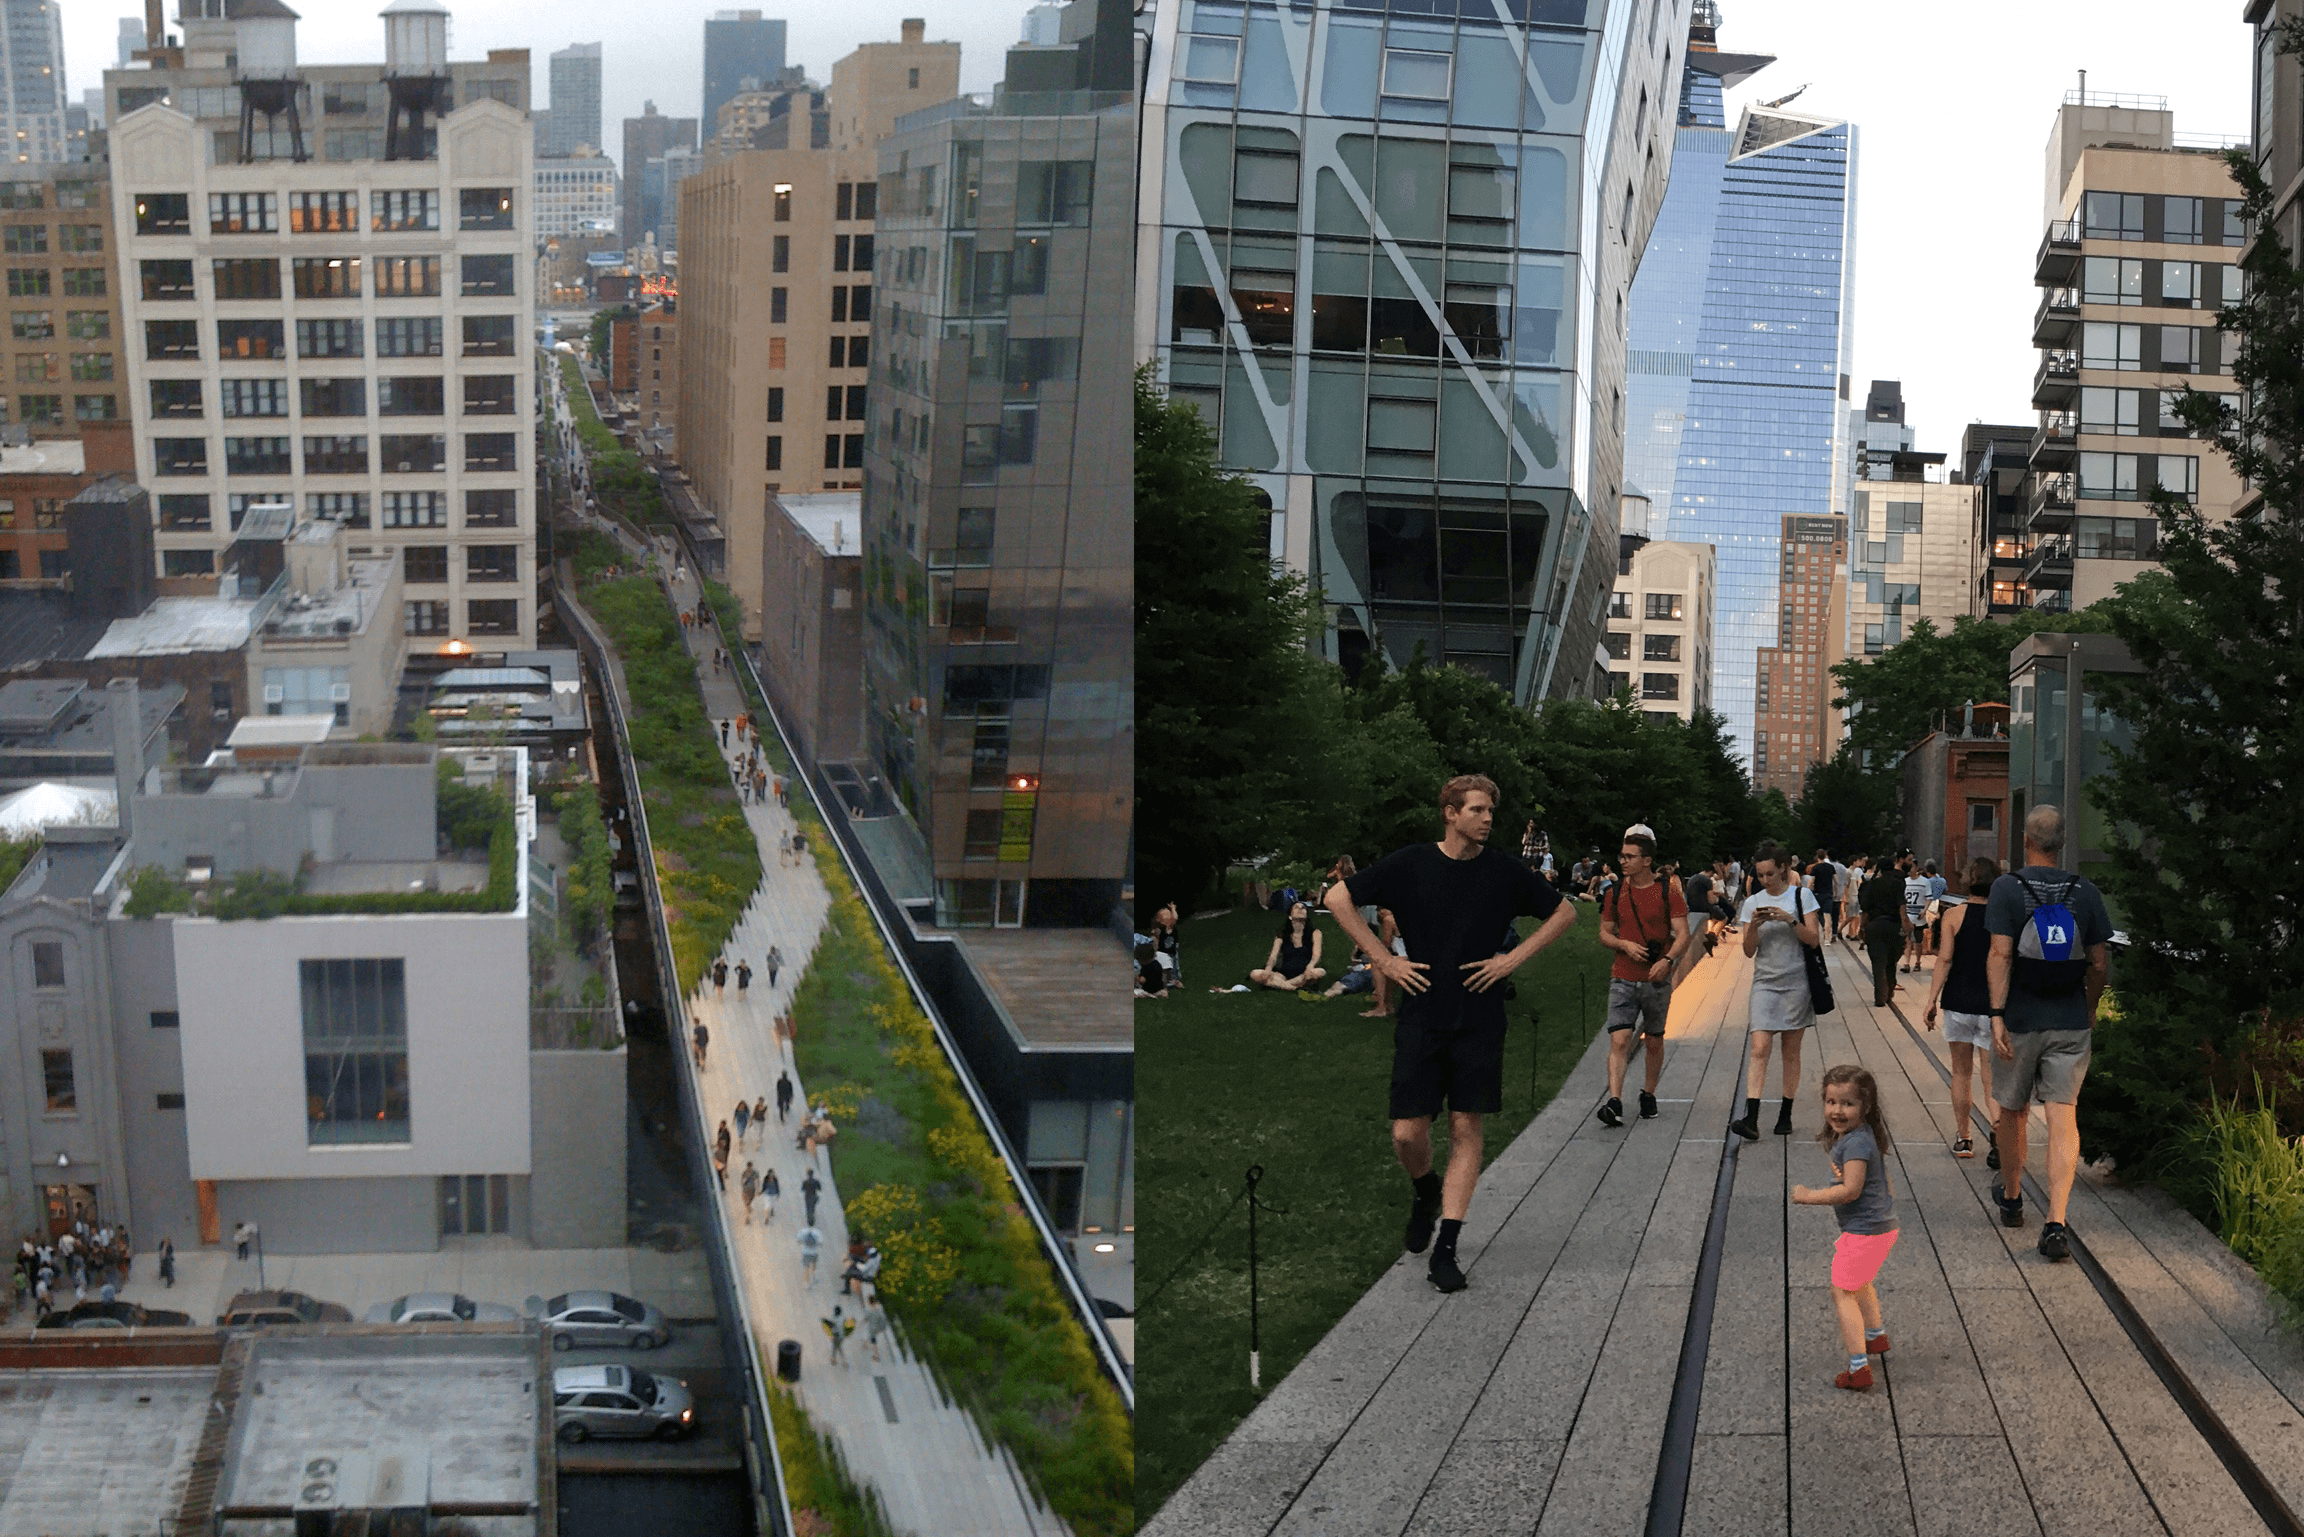 The High Line, as seen from above, New York City